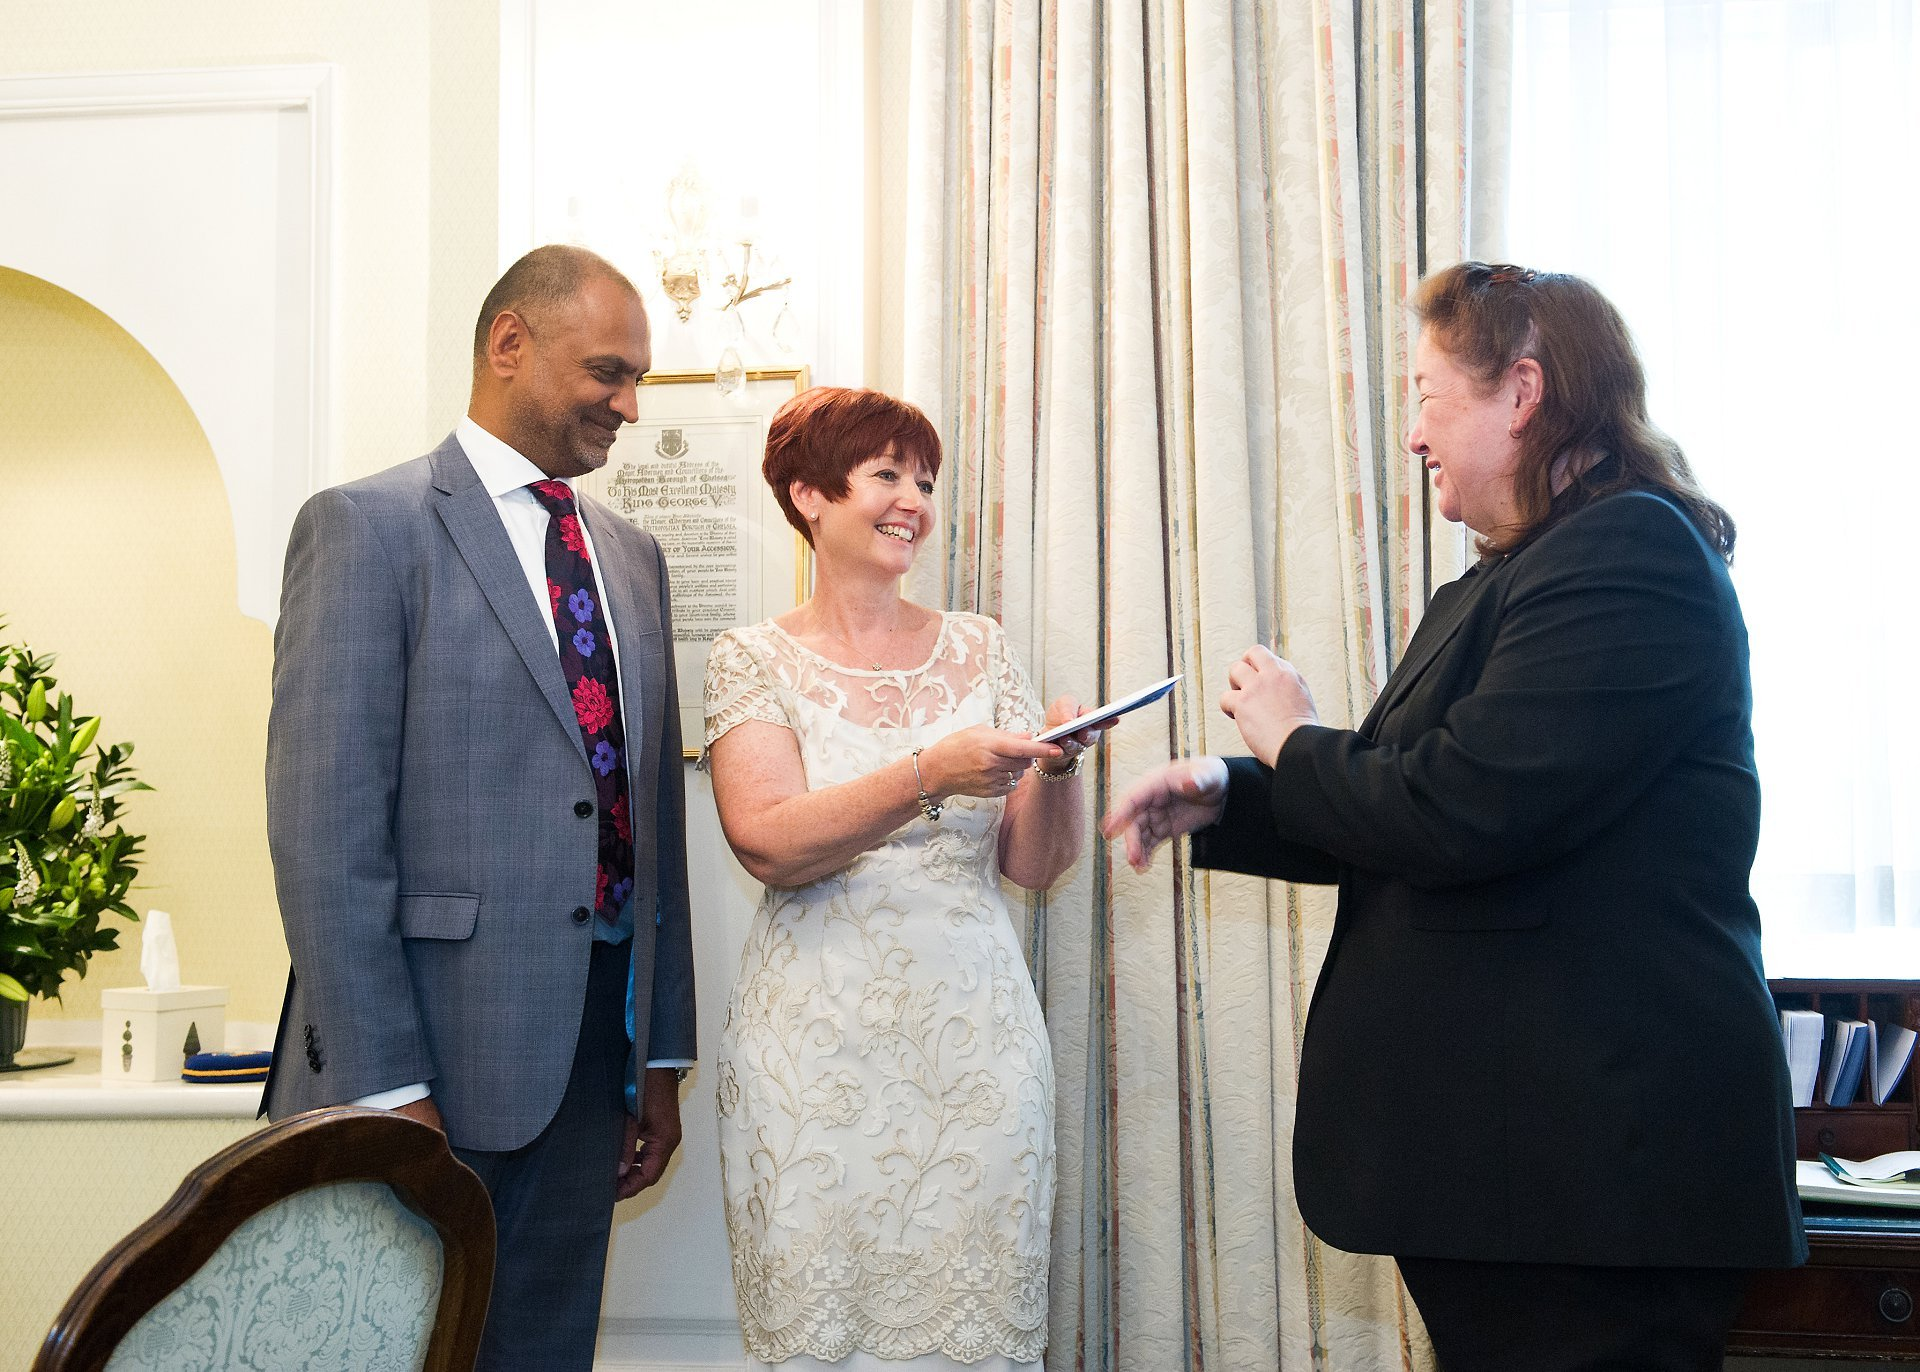 Chelsea registry office wedding photography by a register office specialist here showing the bride and groom receiving their marriage license to the bride